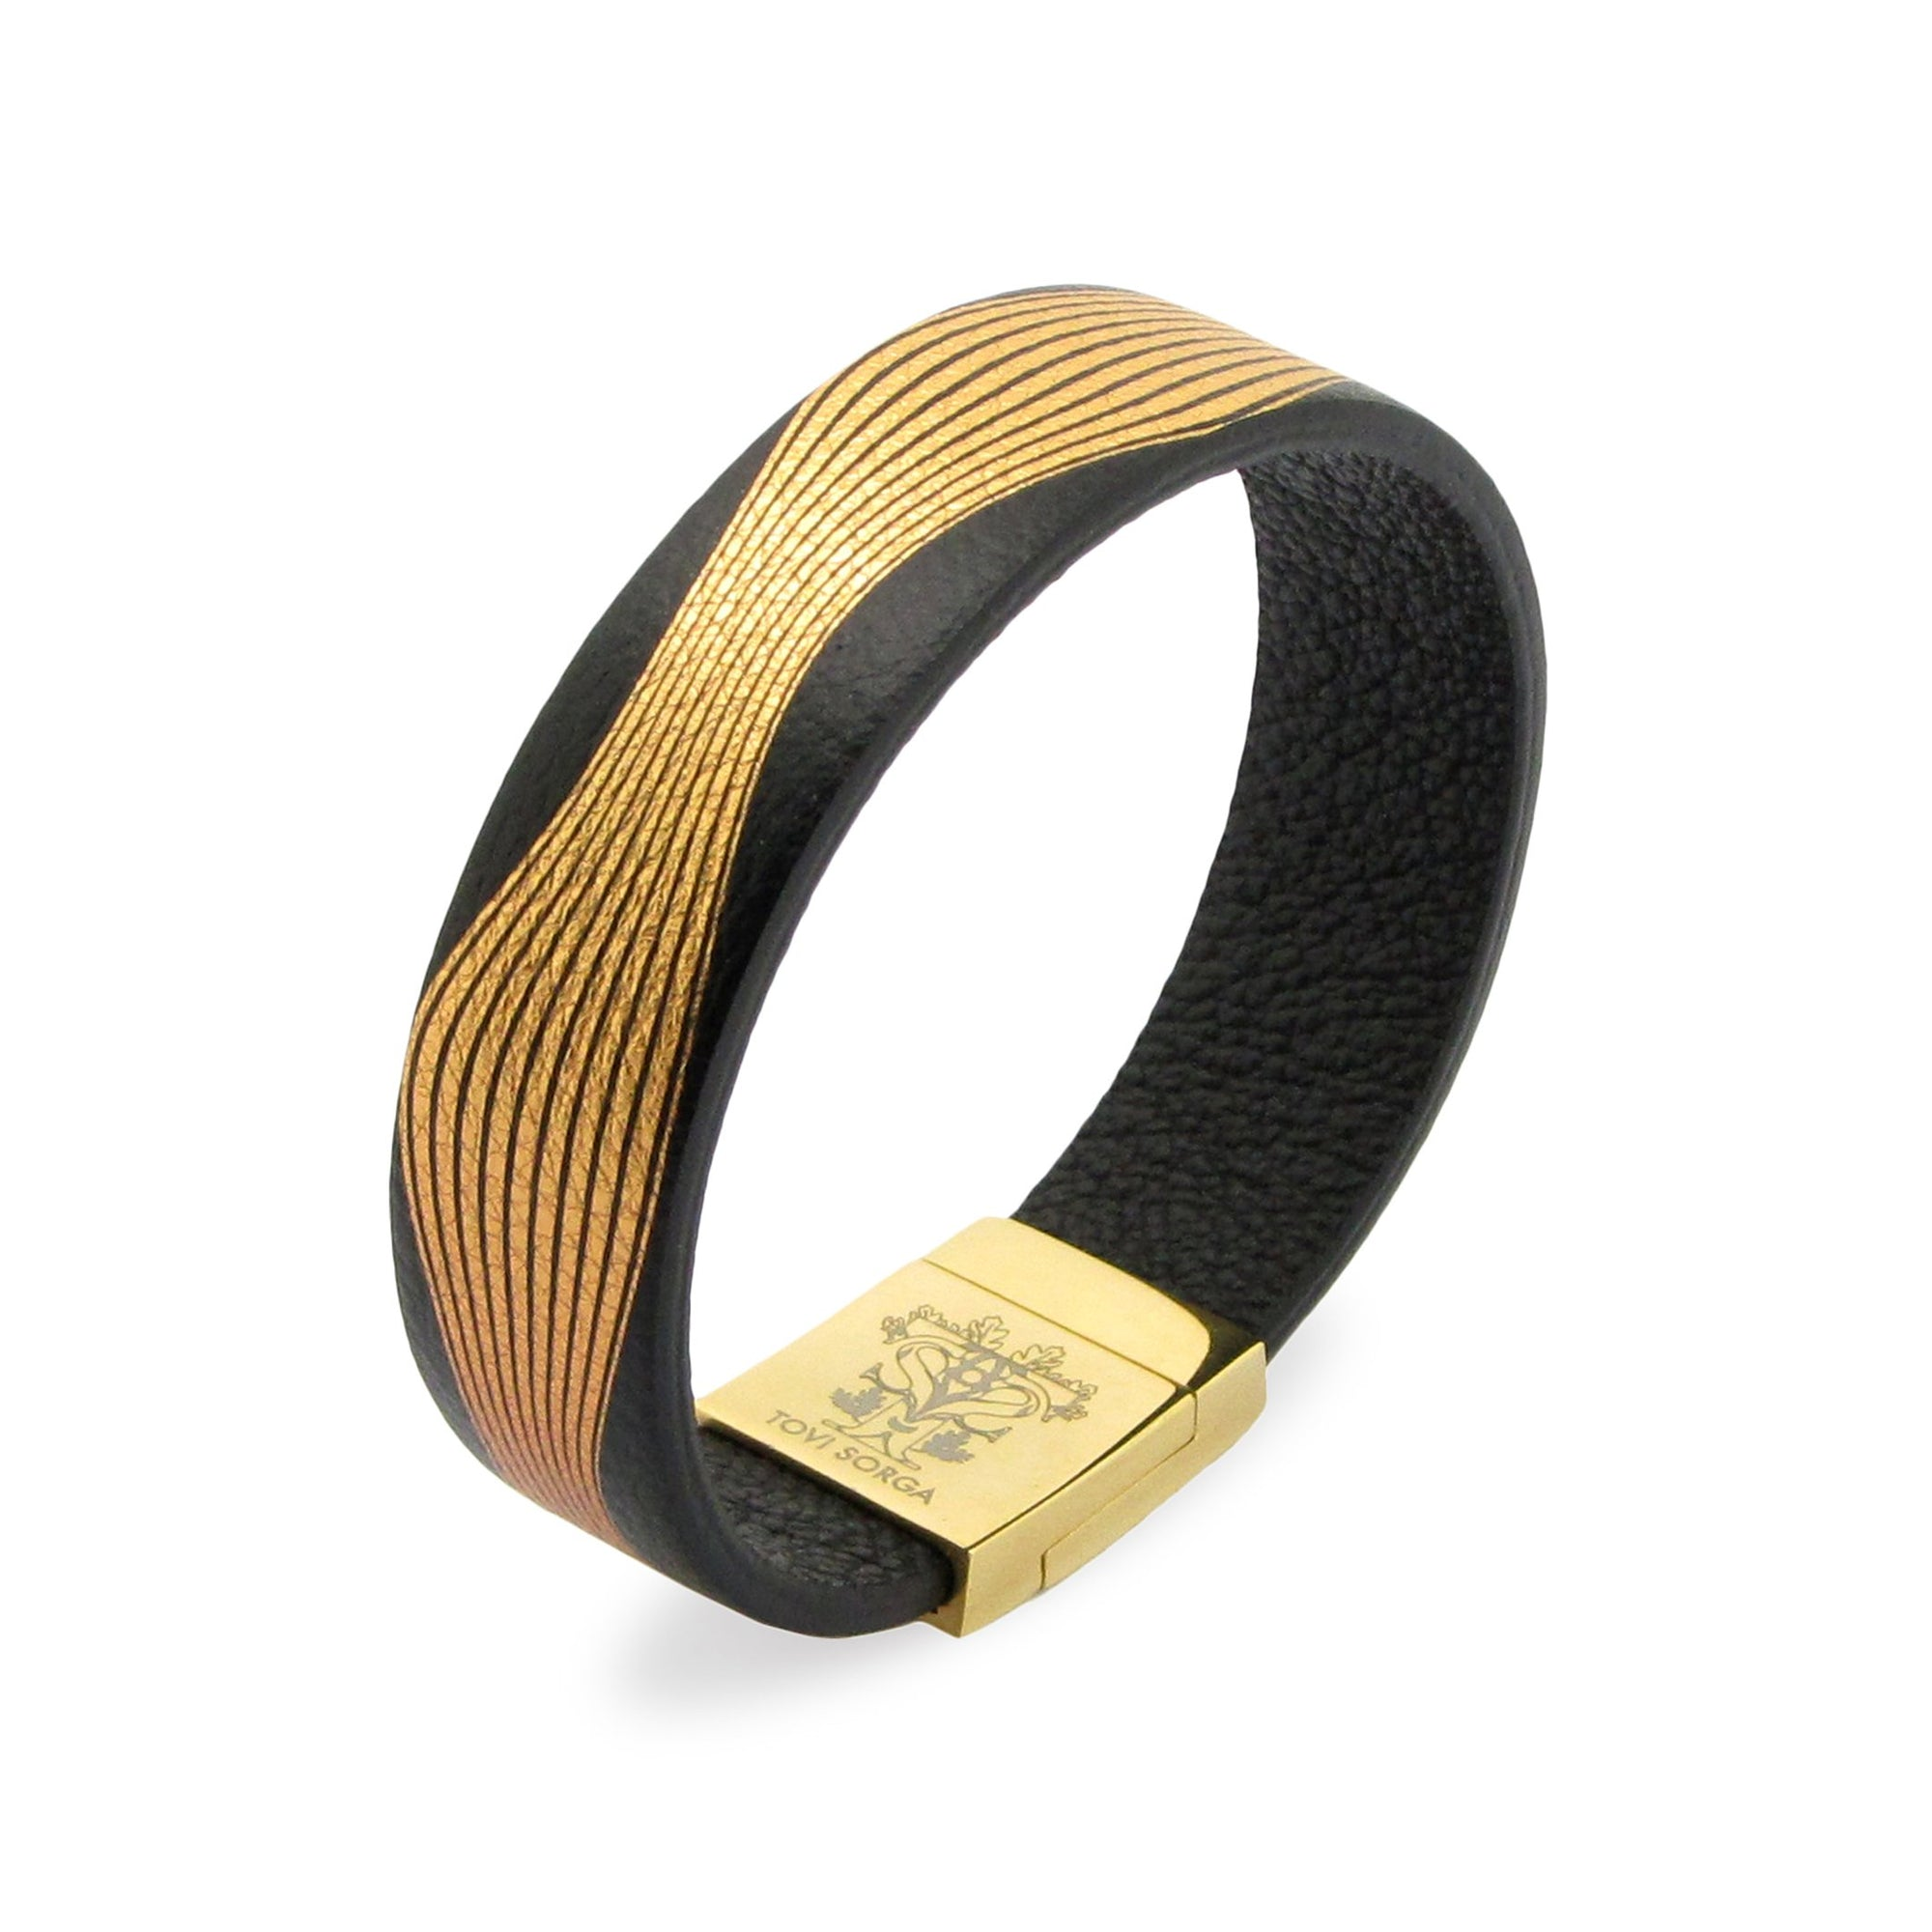 Leather Contactless Payment Bracelet: Rhythm